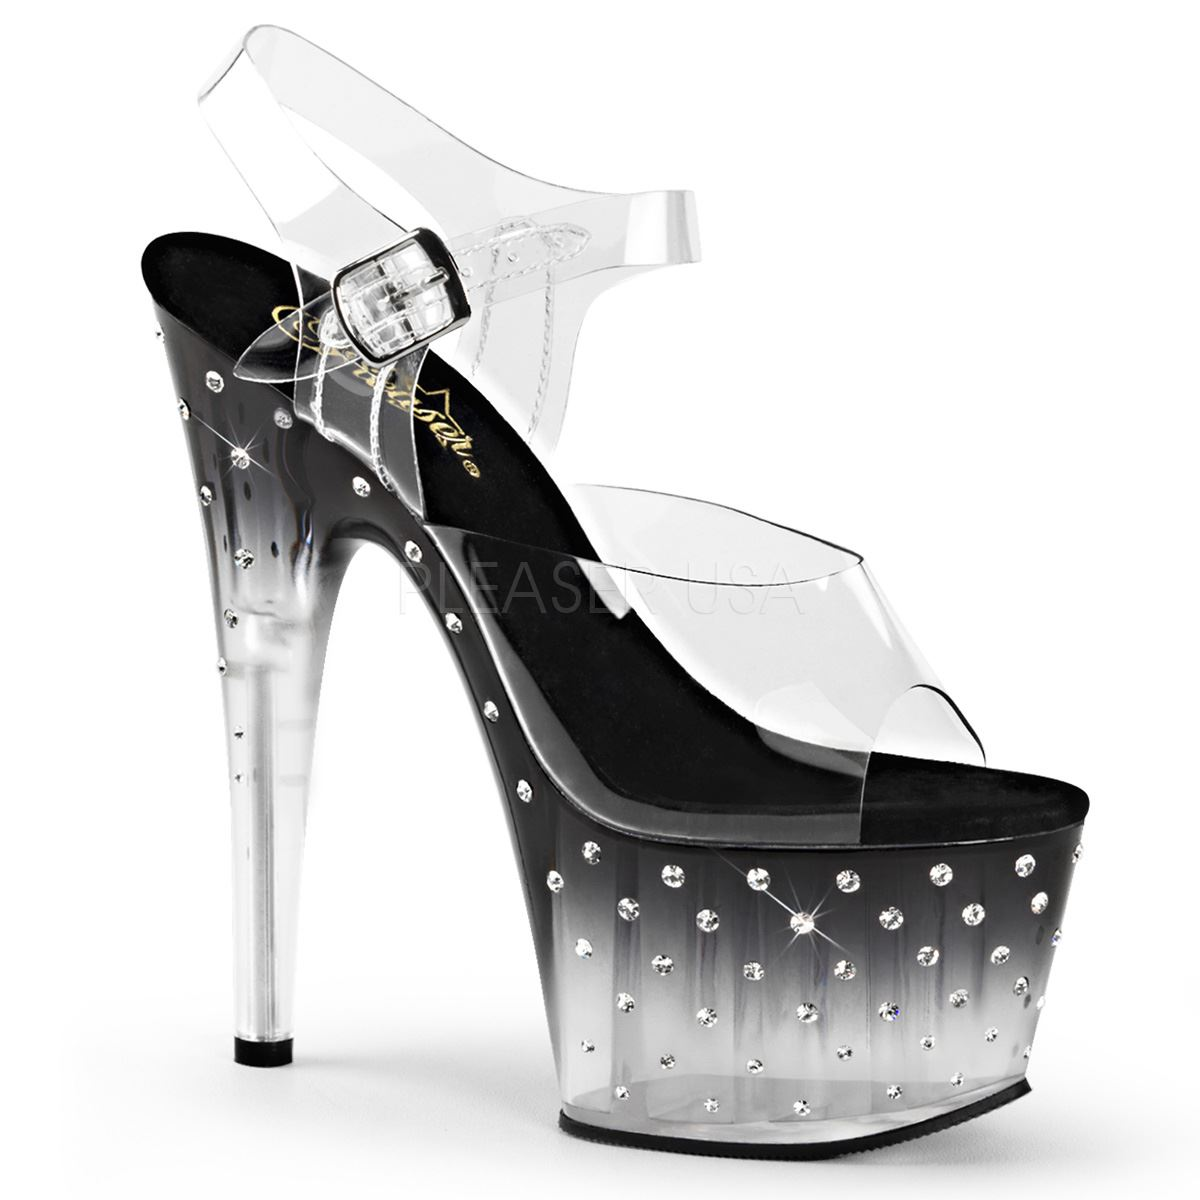 Descuento barato Pleaser Platform Ankle Strap Sandal Rhinestones Studded Bottom Clear/Black-Clear